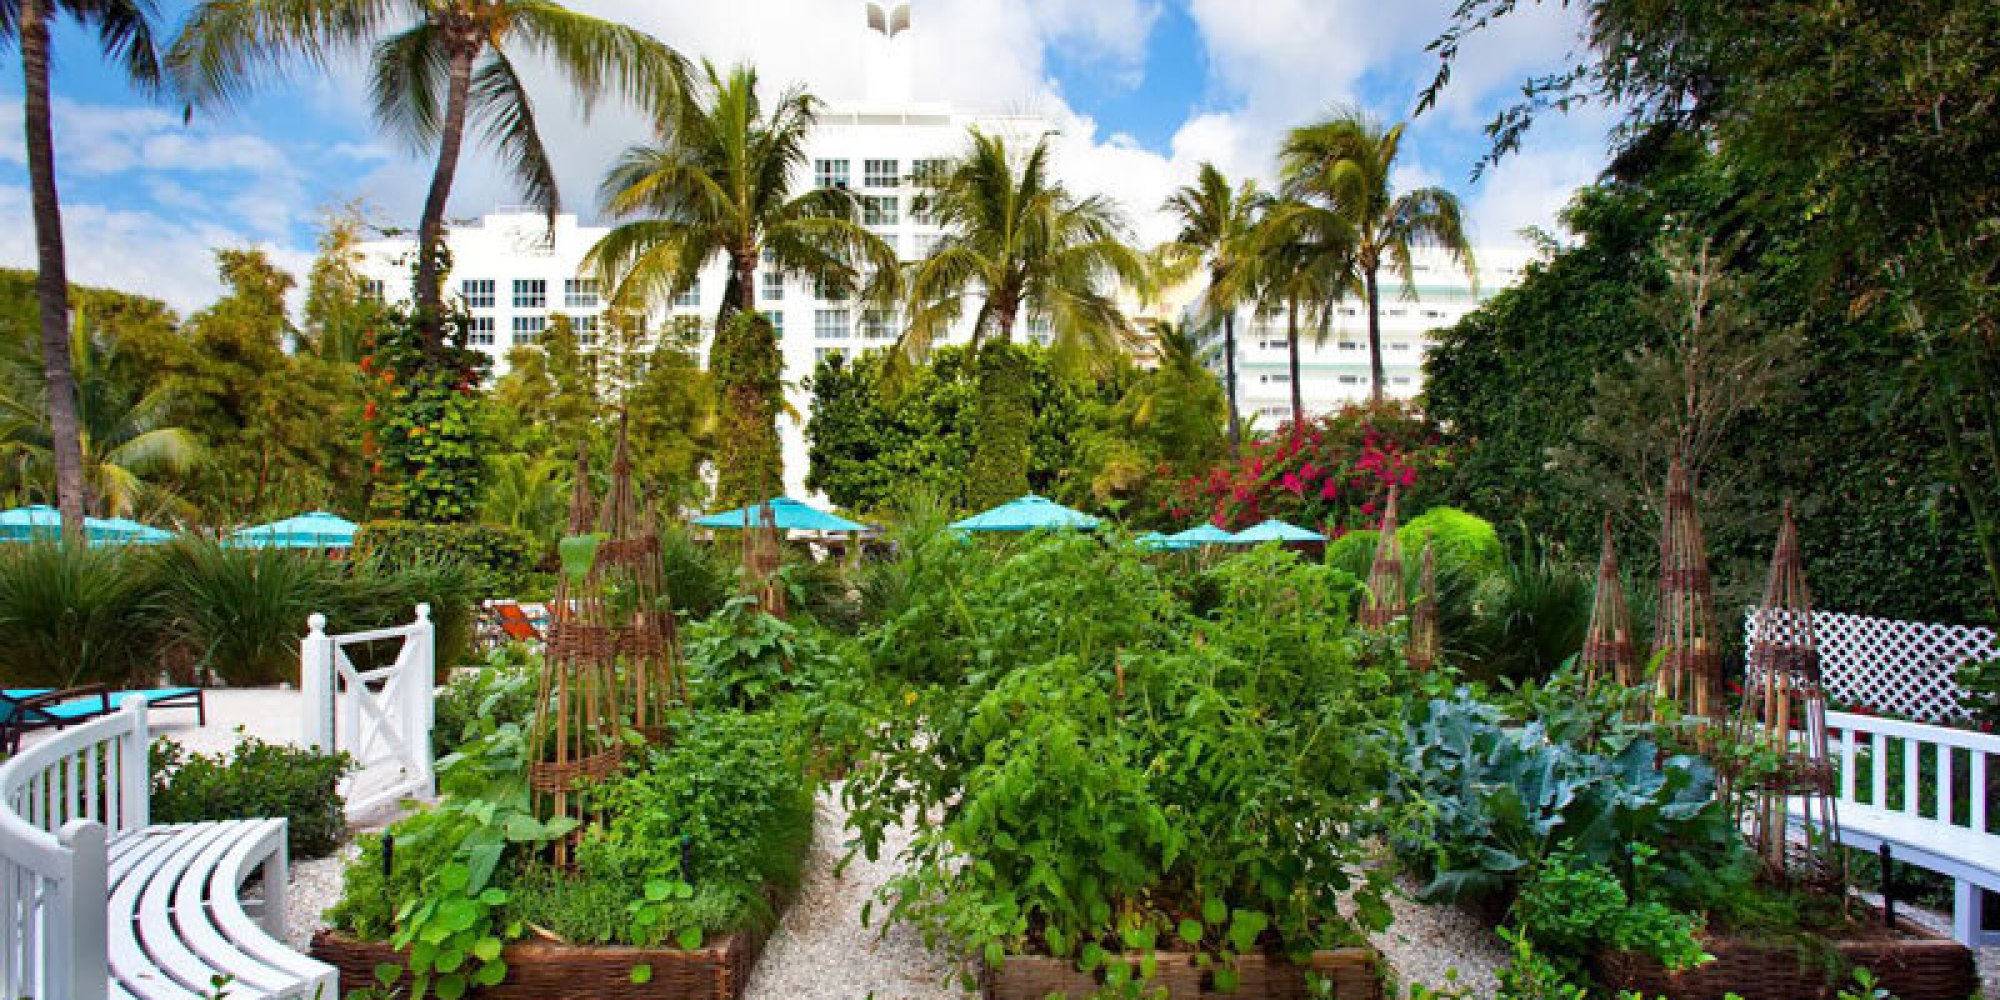 8 Of The World's Most Beautiful Hotel Gardens